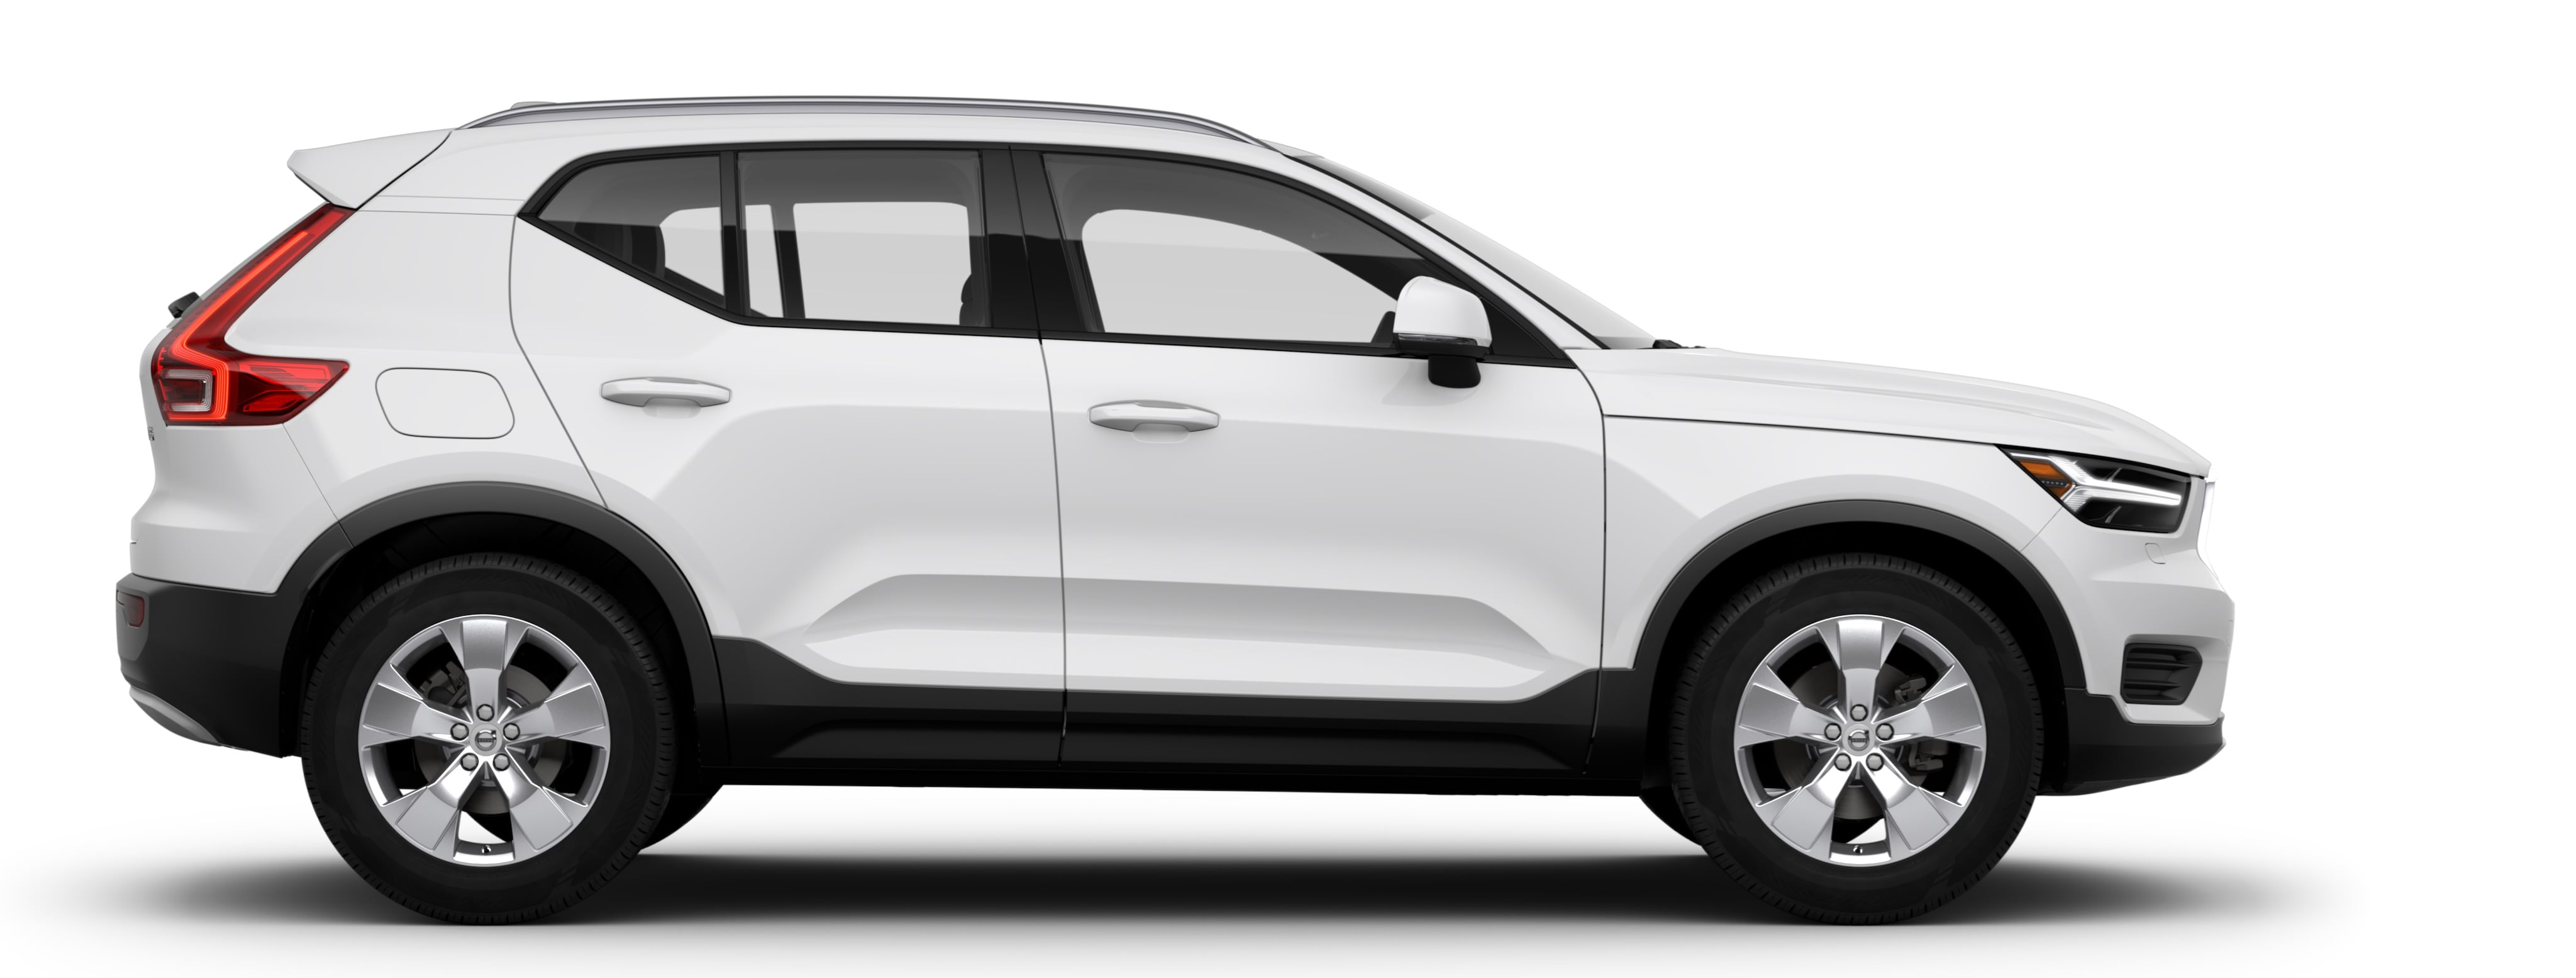 xc 40 model research